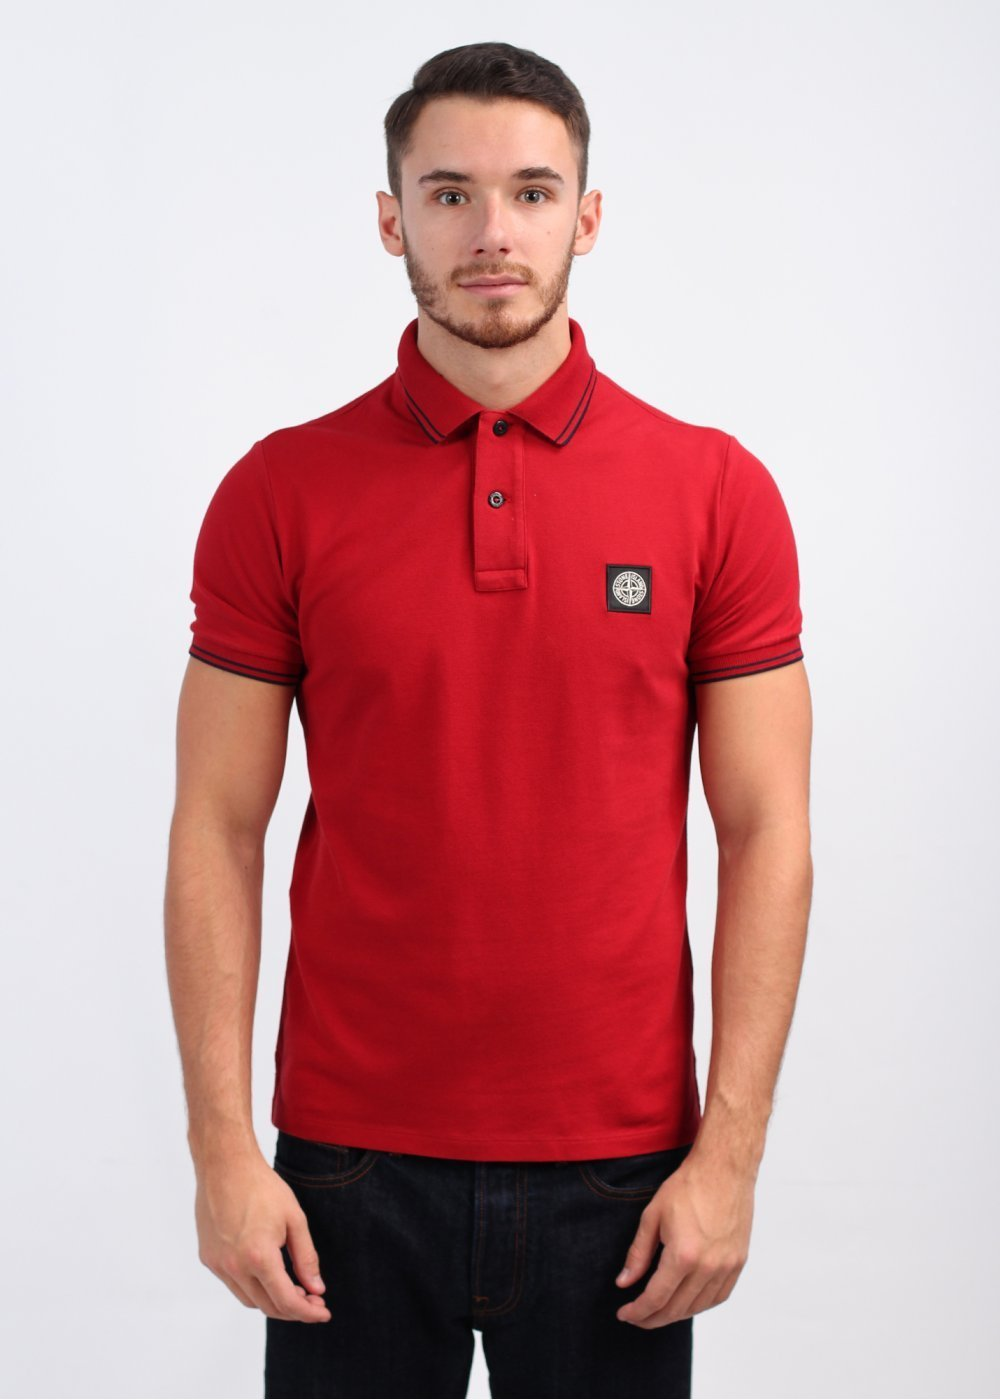 Shop men's polos shirts and T-shirts from Burberry. The collection features graphic print T-shirts, polo shirts in vibrant shades and more. Men's Polo Shirts & T-Shirts. Knitwear Polos T-Shirts. Show Results Clear. Style ALL Long-sleeved Polo Shirts Short-sleeved T-shirts. Show Results Clear. Colour ALL Black Grey Brown Beige Blue.